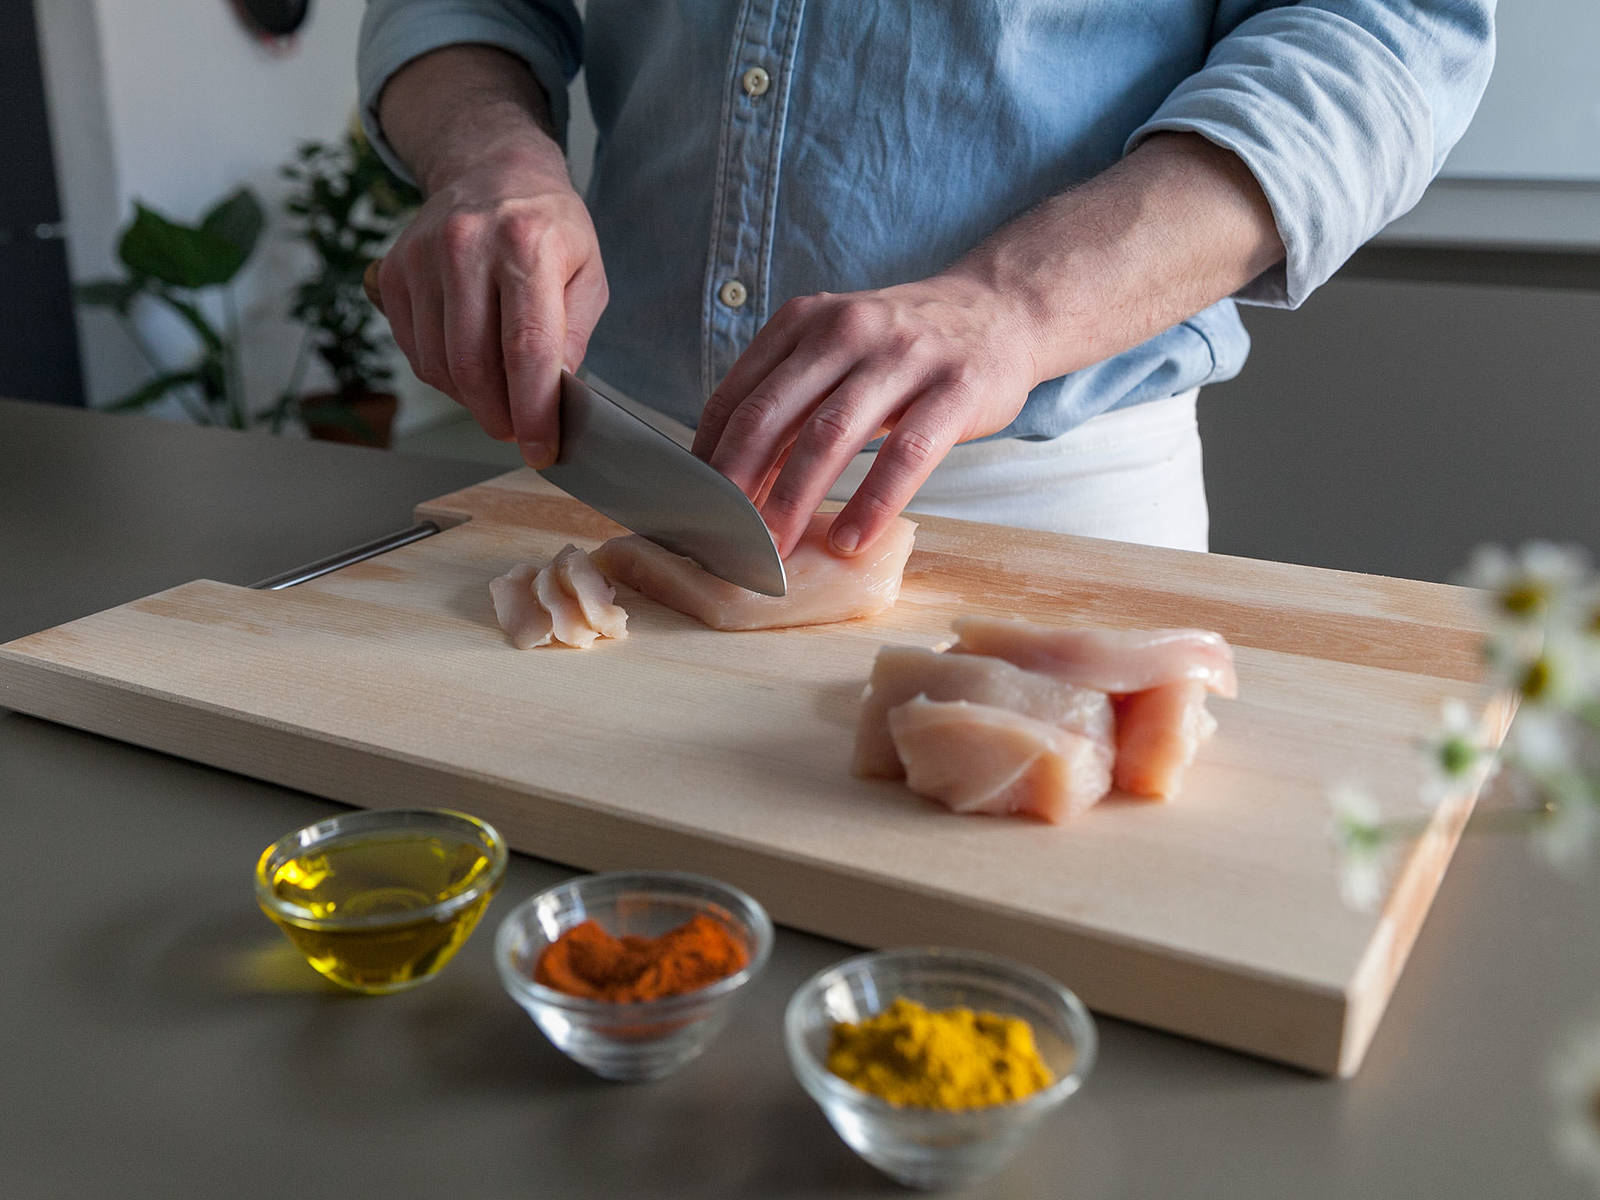 Slice chicken breasts crosswise. Mix olive oil, spicy paprika powder, and curry powder in a bowl. Add  chicken breast slices, toss to coat, and let marinate for approx. 15 min.